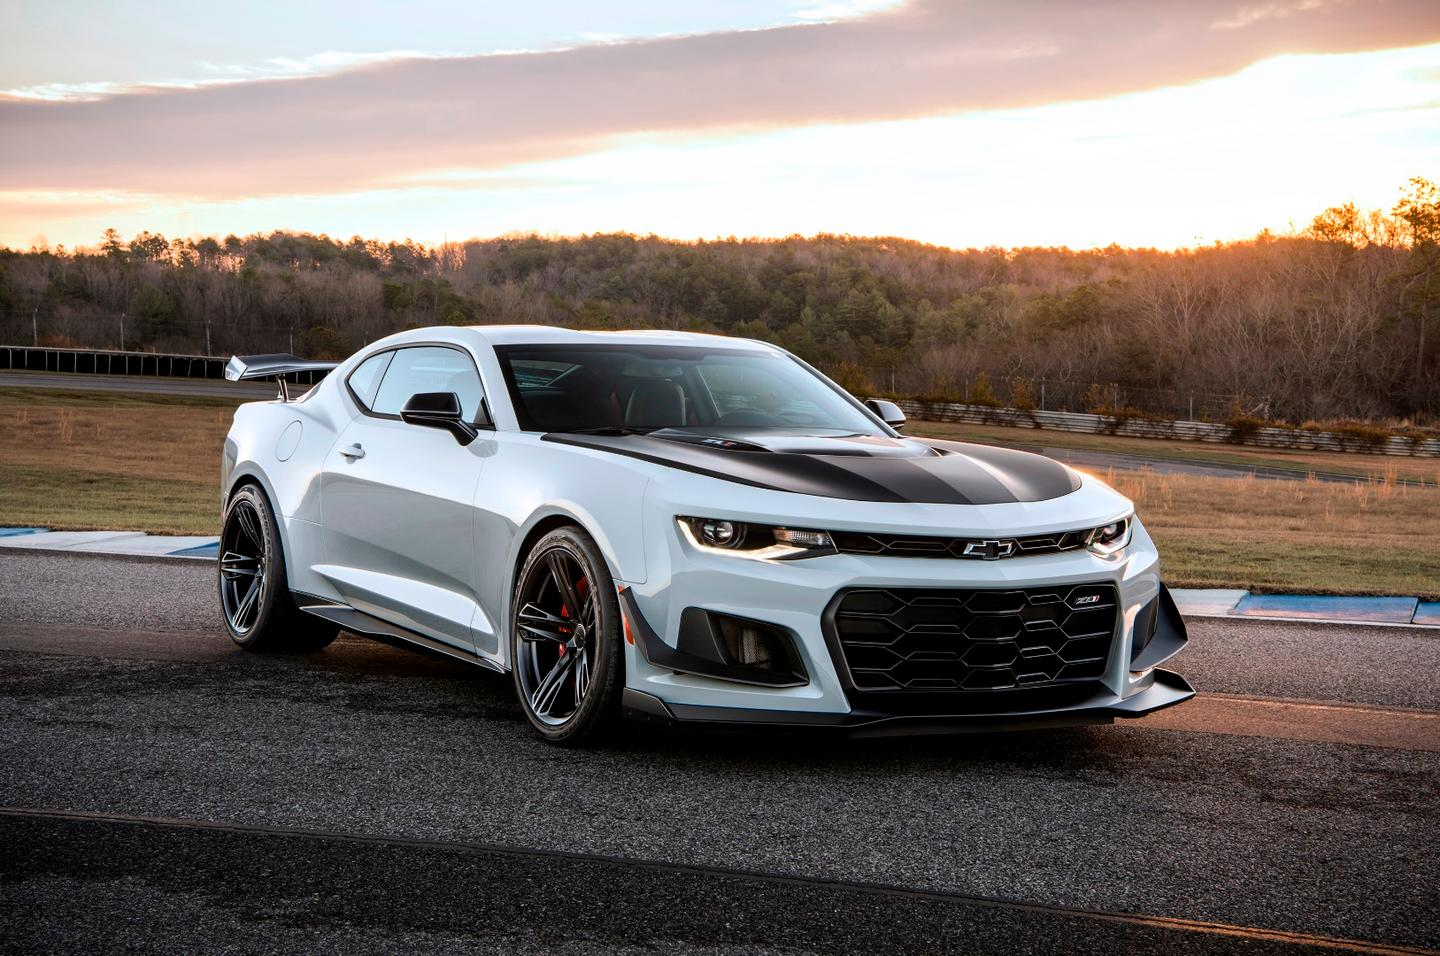 The new Chevrolet Camaro ZL1 1LE is a more focused, honed beast than the standard ZL1